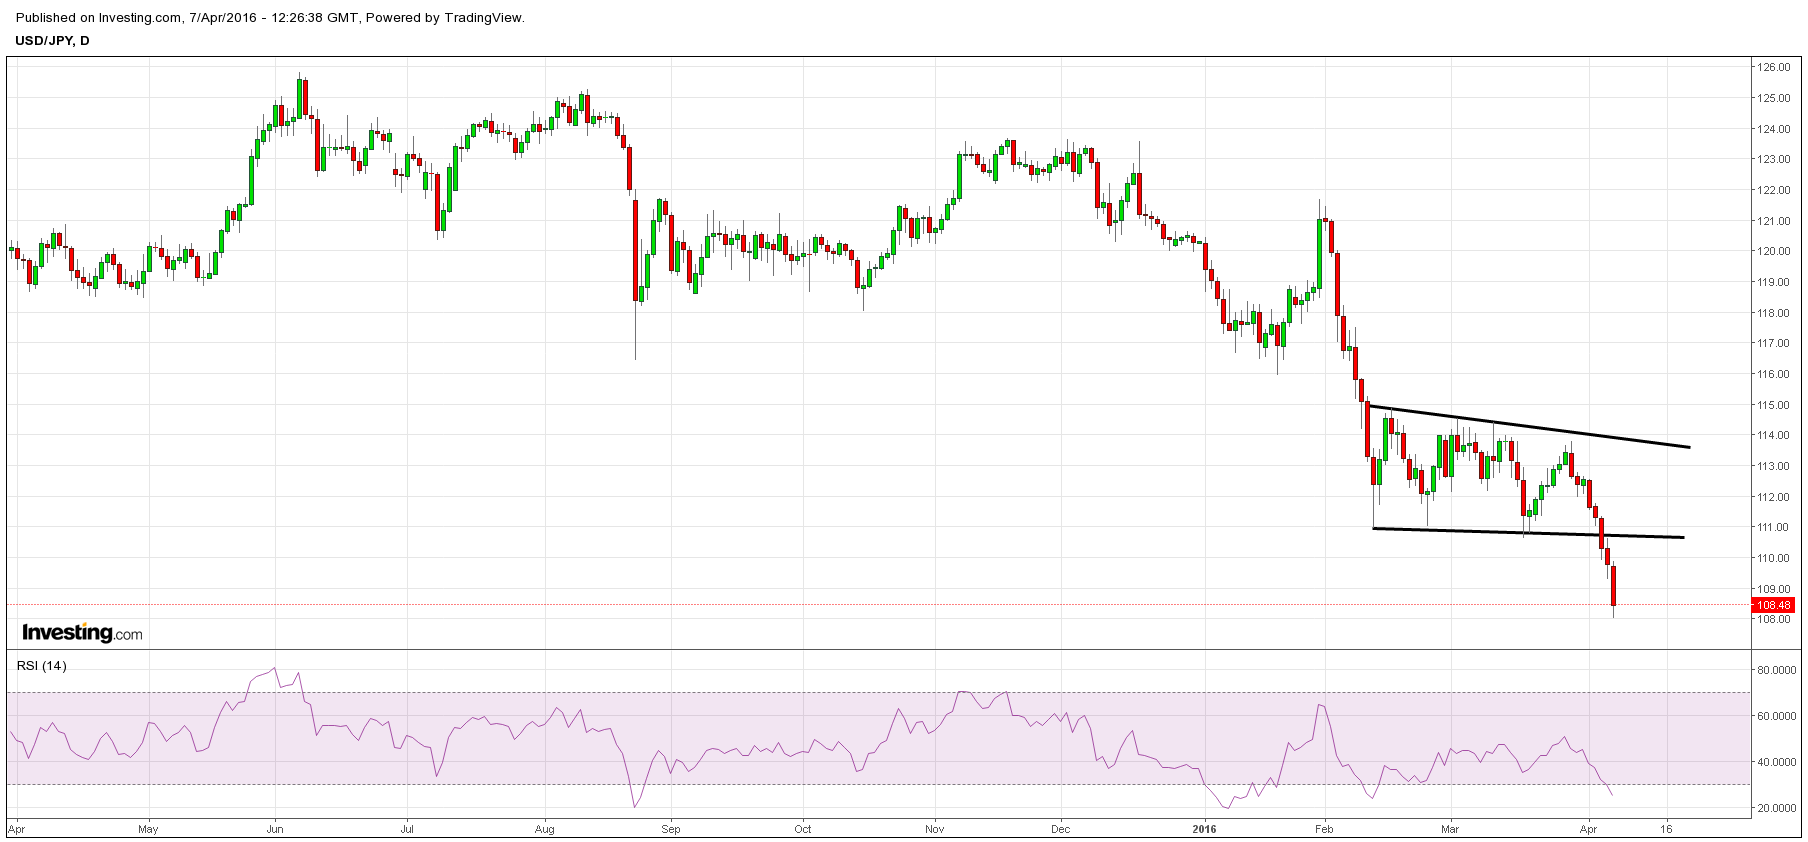 USDJPY has violated key support in the last few days, but interestingly enough the correlation with SPX largely has disappeared since mid-February